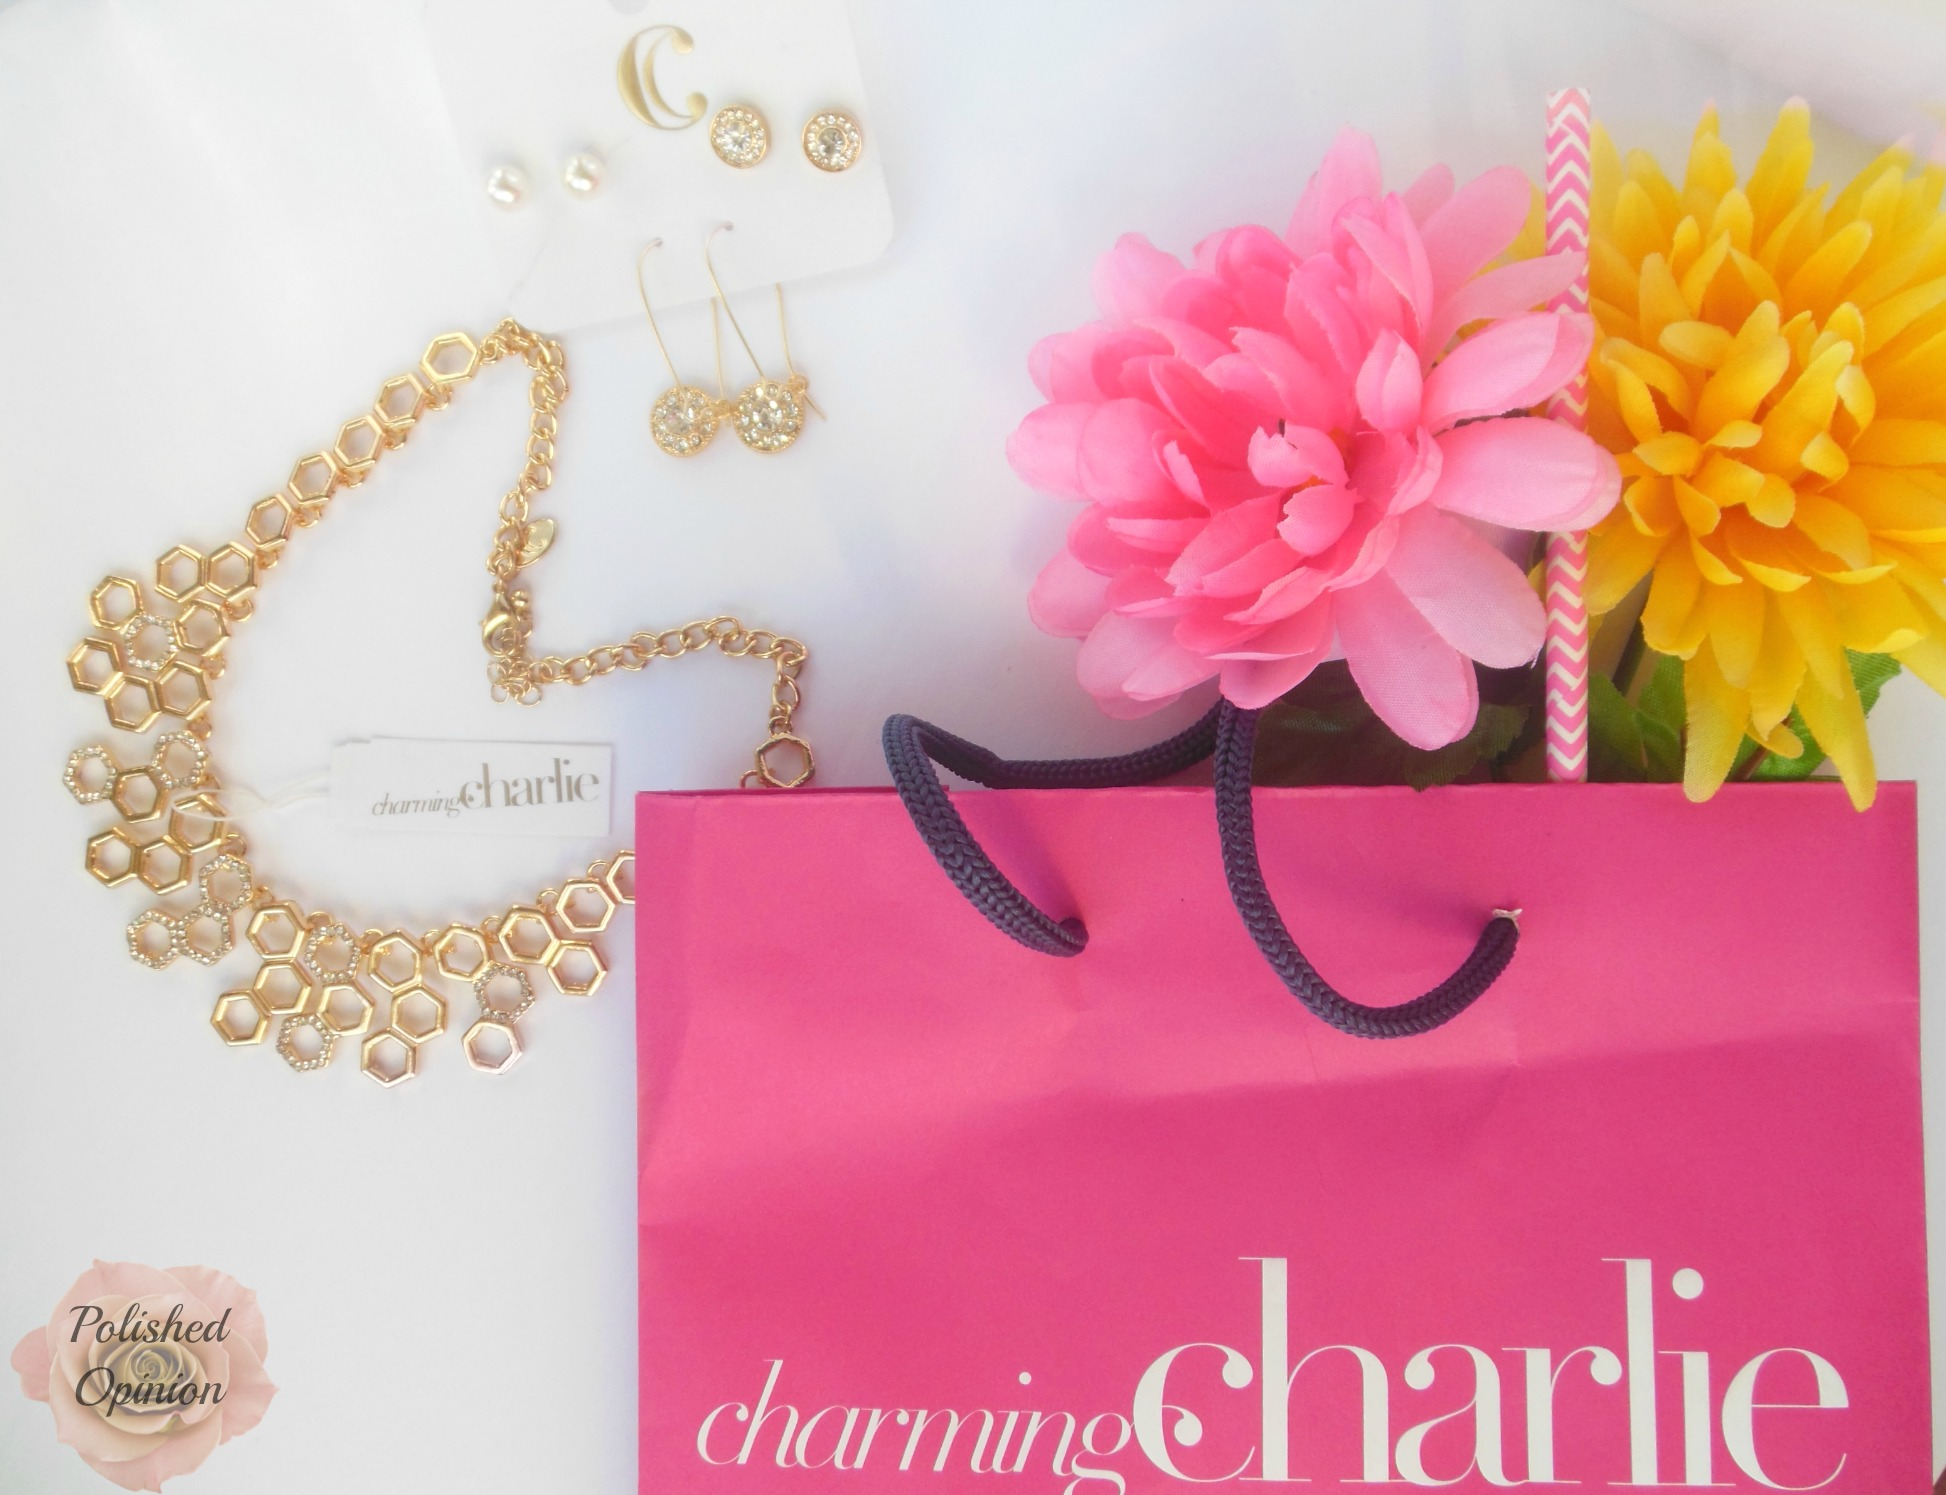 Every Wondered About Charming Charlie? Is their Jewelry Worth It?